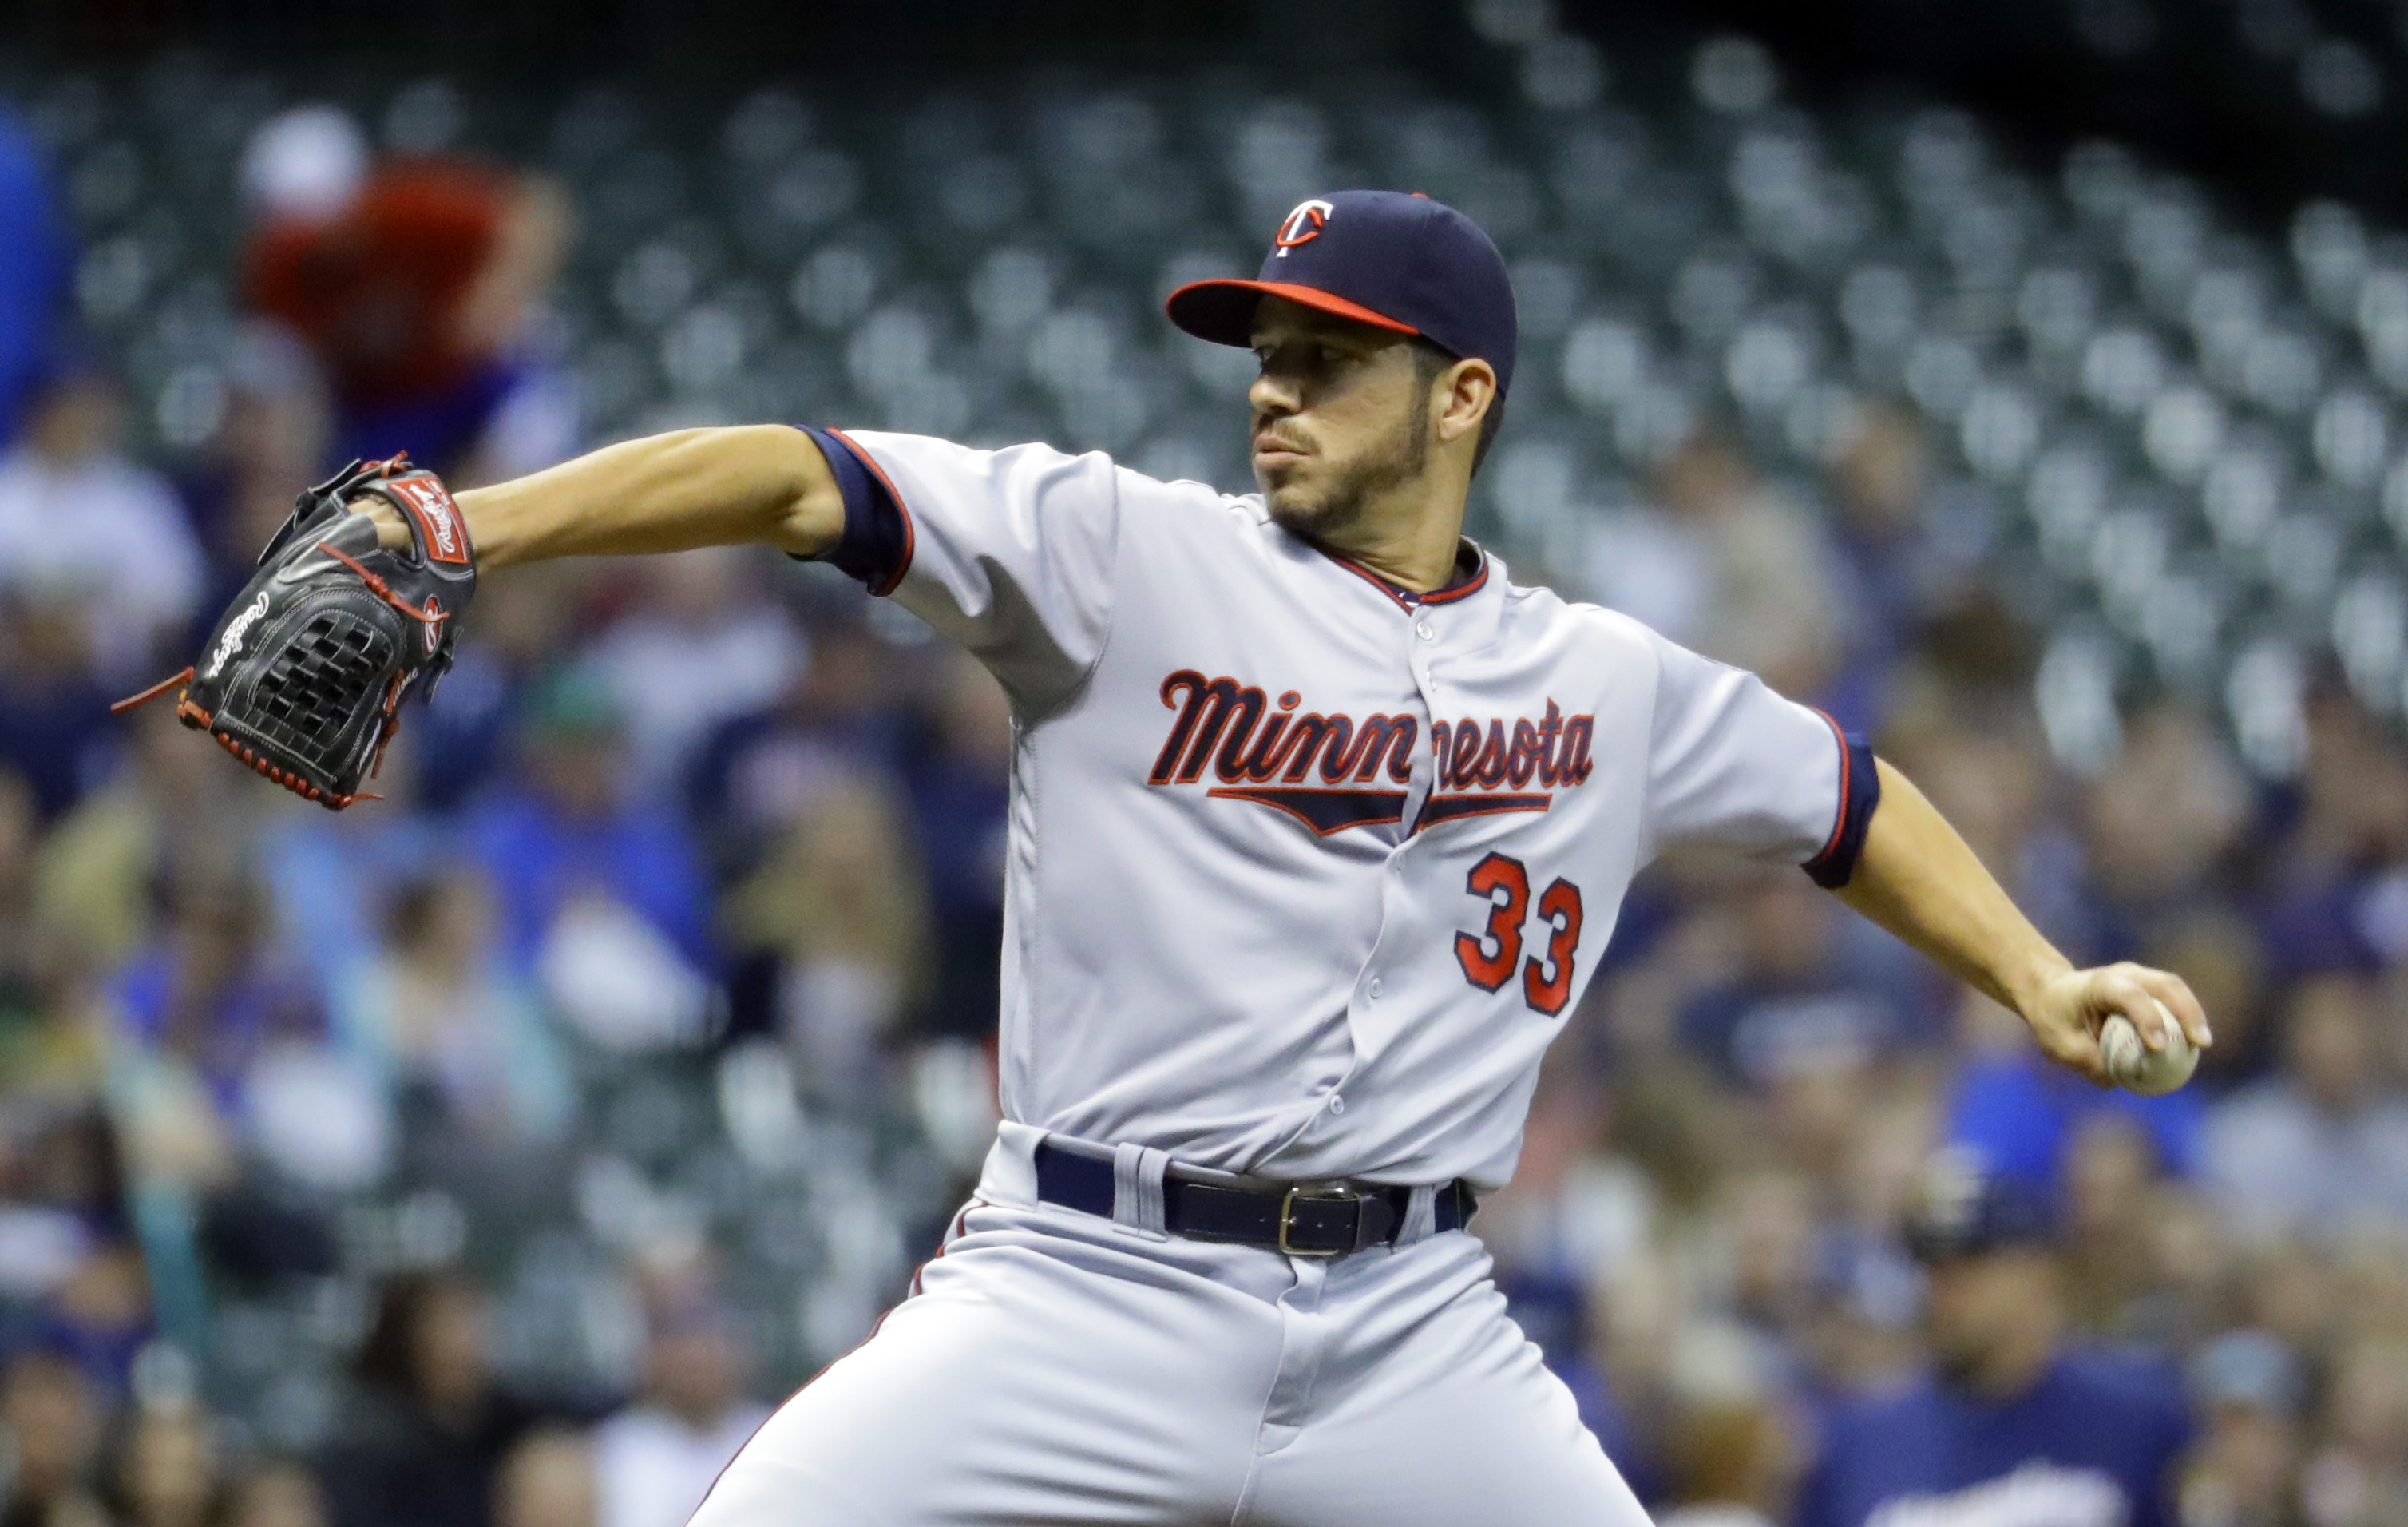 Minnesota Twins starting pitcher Tommy Milone throws during the first inning of a baseball game against the Milwaukee Brewers Wednesday, April 20, 2016, in Milwaukee. (AP Photo/Morry Gash)